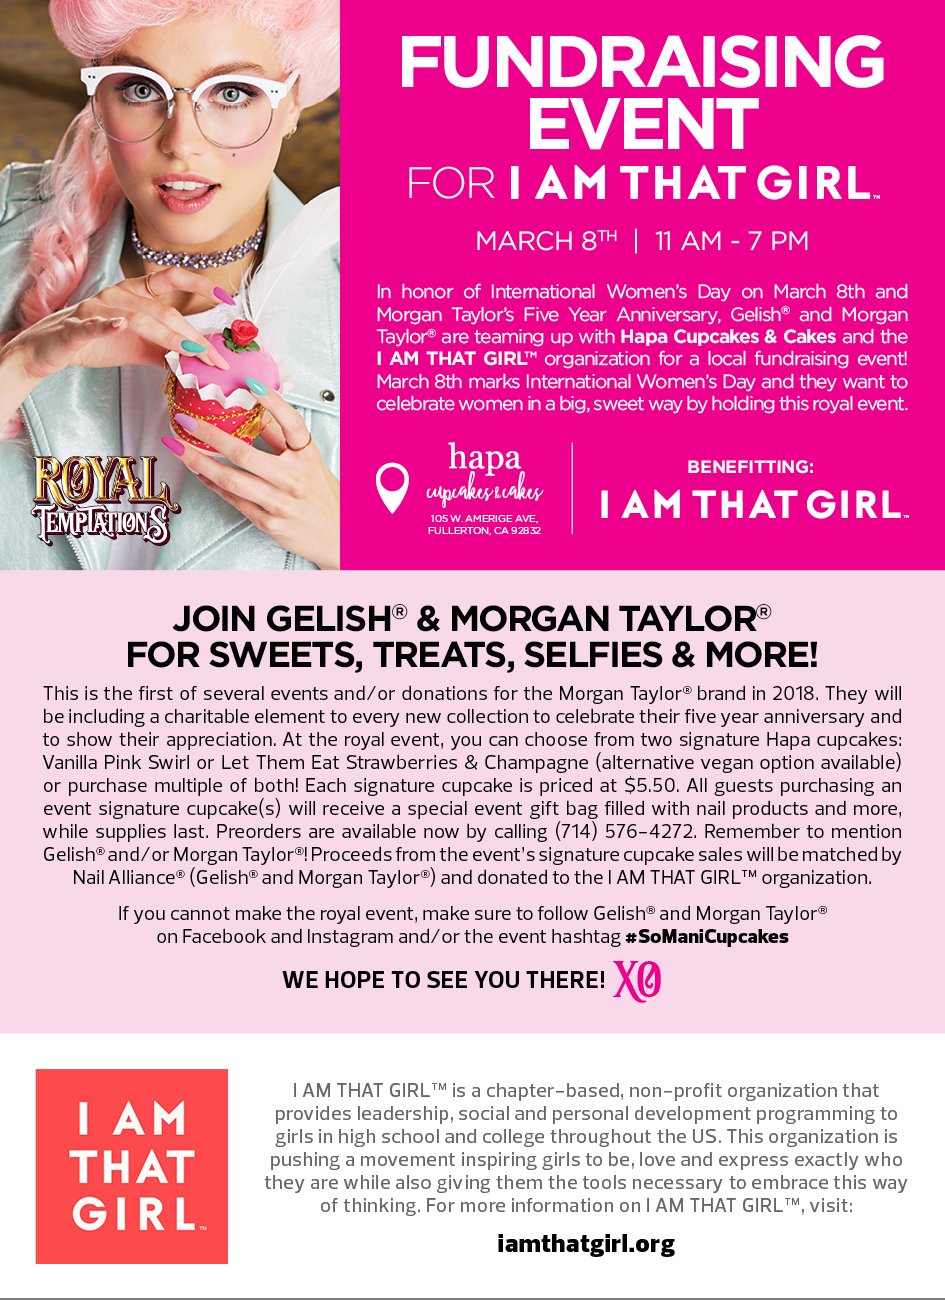 Foundraising event for I AM THAT GIRL. March 8, 11 AM - 7 PM. In honor of International Women's Day on March 8th and Morgan Taylor's Five Year Aniversary, Gelish and Morgan Taylor are teaming up with Hapa Cupcakes & Cakes and the I Am That Girl organization for a local fundrasing event! March 8th marks International Women's Day and they want to celebrate women in a big, sweet way by holding this royal event. Join Gelish & Morgan Taylor for Sweets, Treats, Selfies & More! This is the first of several events and/or donations for the Morgan Taylor brand in 2018. They will be including a charitable element to every new collection to celebrate their five year anniversay and to show their appreciation. At the royal event, you can choose from two signature Hapa cupcakes: Vanilla Pink Swirl or Let Them Eat Strawberries & Champagne (altervative vegan option available) or purchas multiple of both! Each signature cupcake is priced at $5.50. All guests purchasing an event signature cupcake(s) will receive a special event gift bag filled with nail products and more, while supplies last. Preorders are available now by calling (714) 576-4272. Remember to mention Gelish and/or Morgan Taylor! Proceeds from the event's signature cupcake sales will be matched by Nail Alliance (Gelish and Morgan Taylor) and donated to the I AM THAT GIRL organization. If you cannot make the royal event, make sure to follow Gelish and Morgan Taylor on Facebook and Instagram and/or the event hashtag #SoManyCupcakes. We hope to see you there!